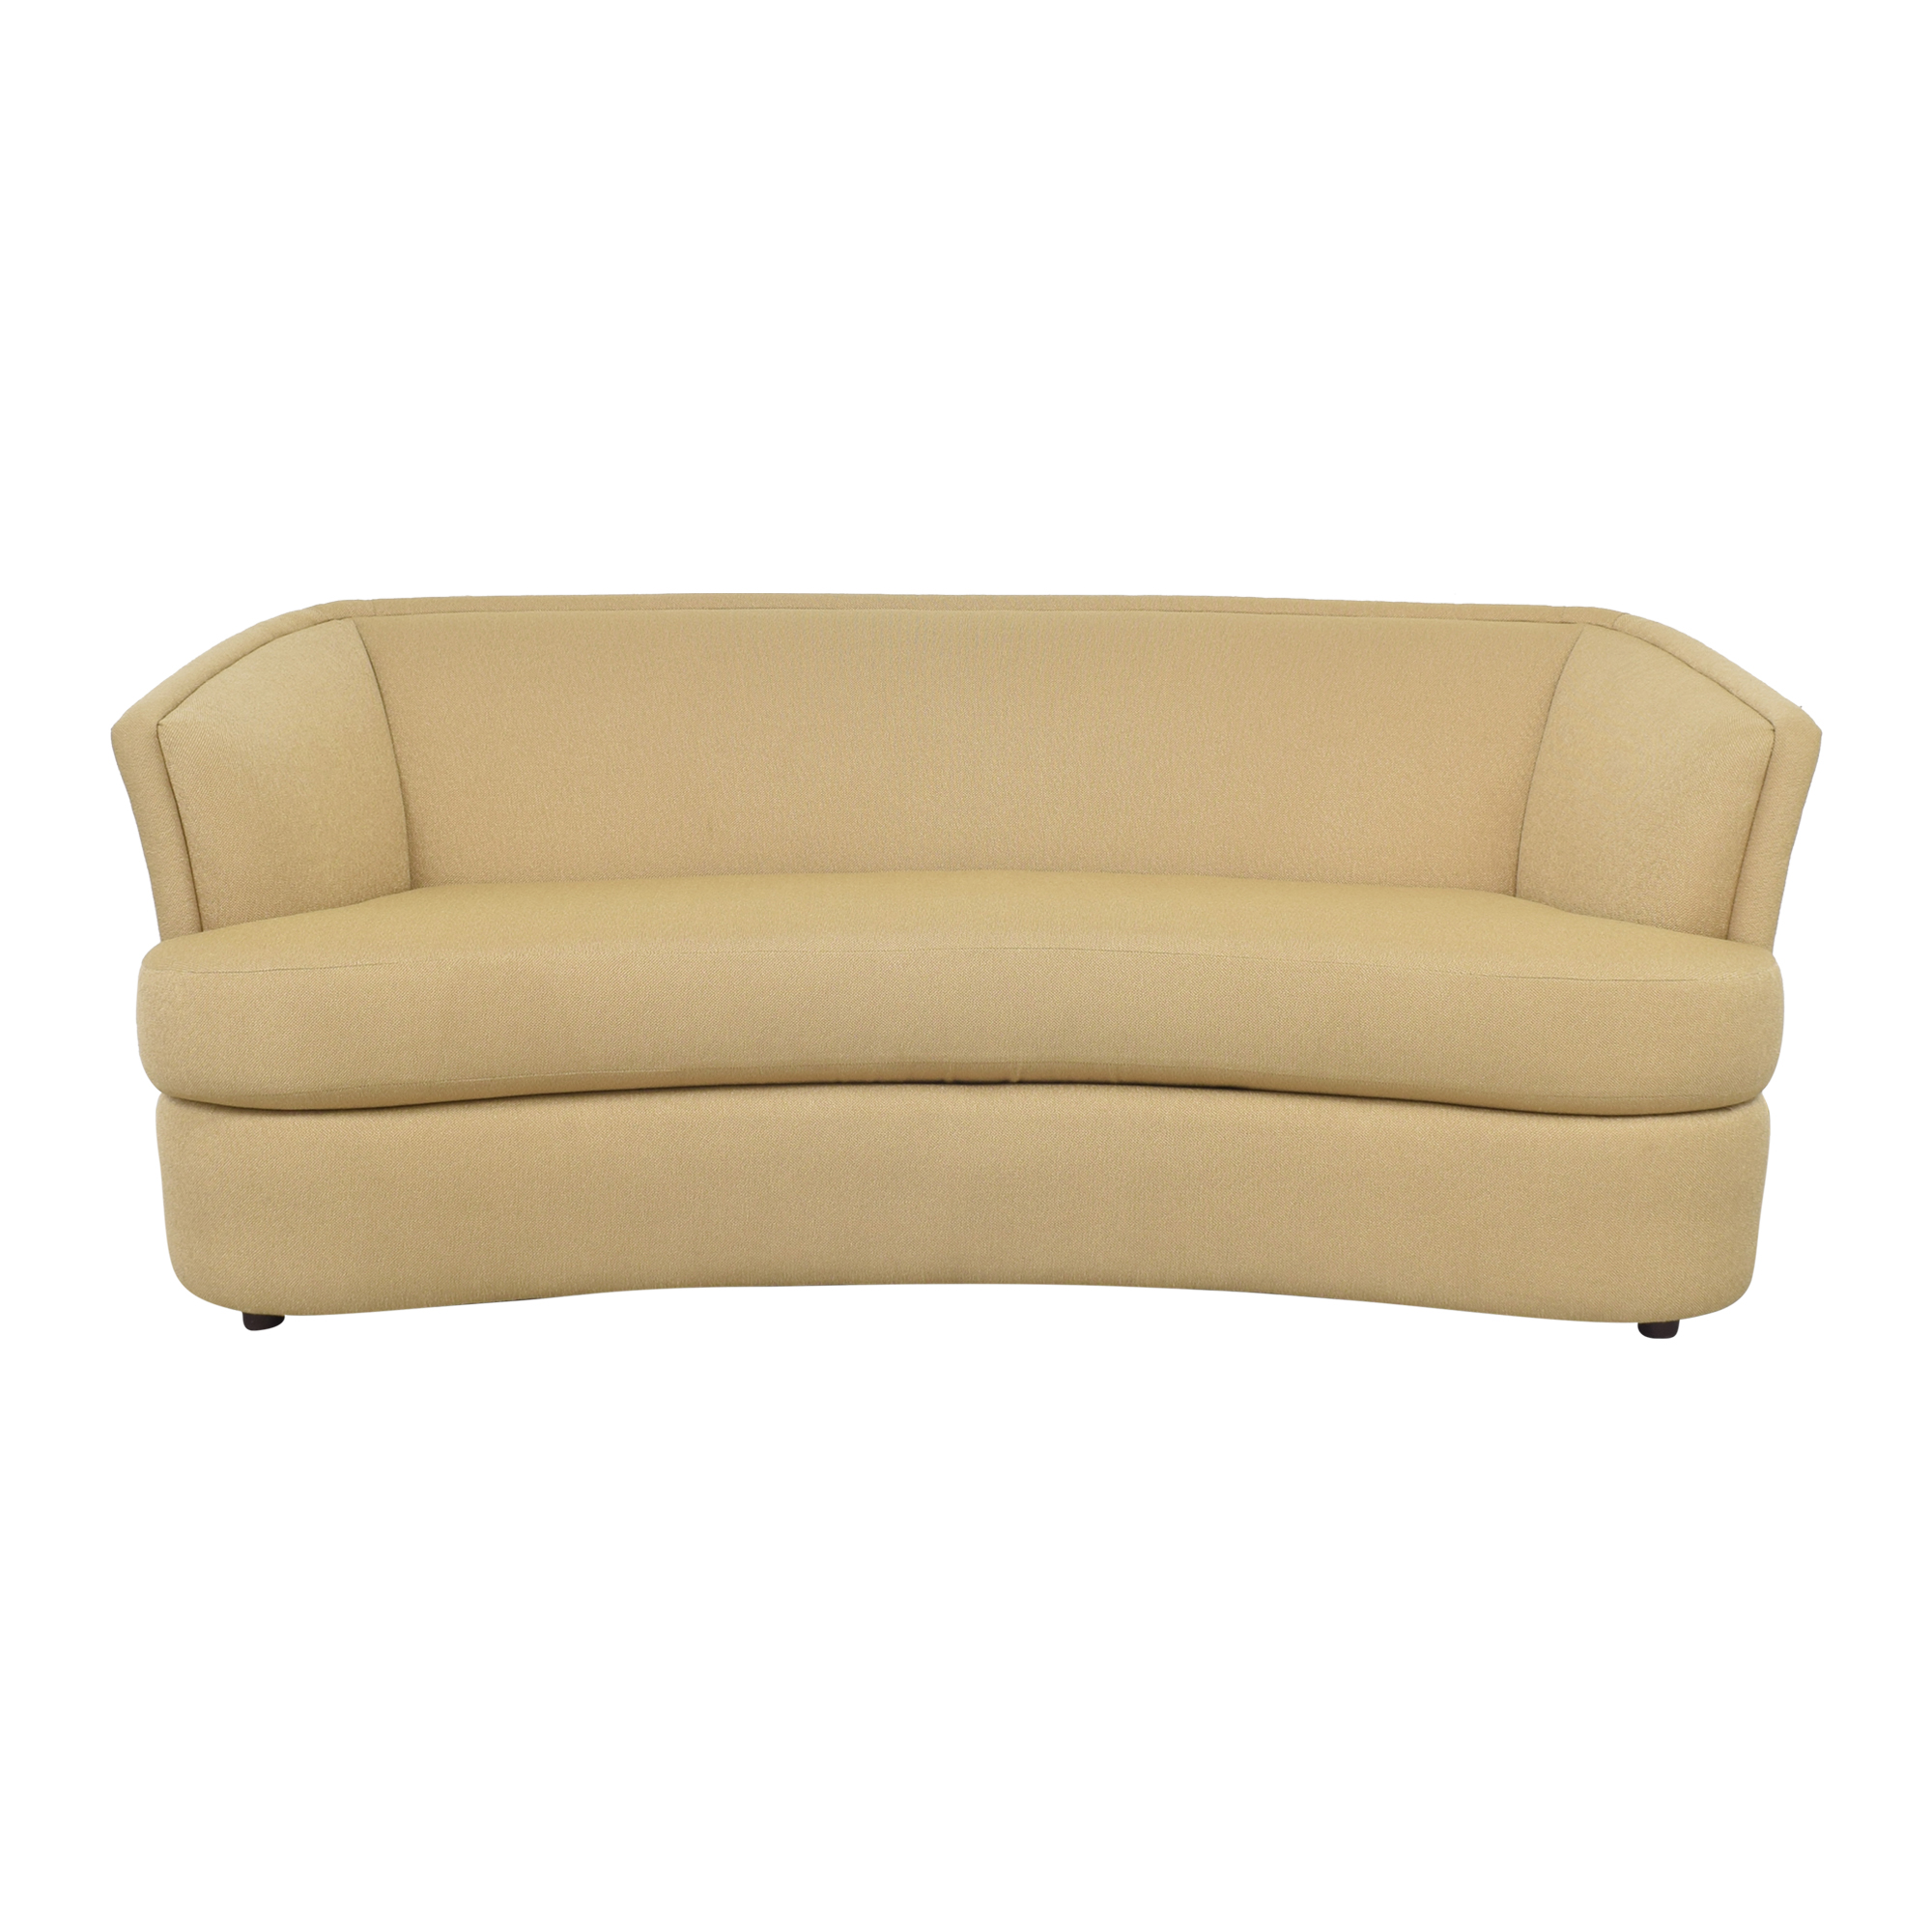 shop Safavieh Curved Sofa Safavieh Classic Sofas